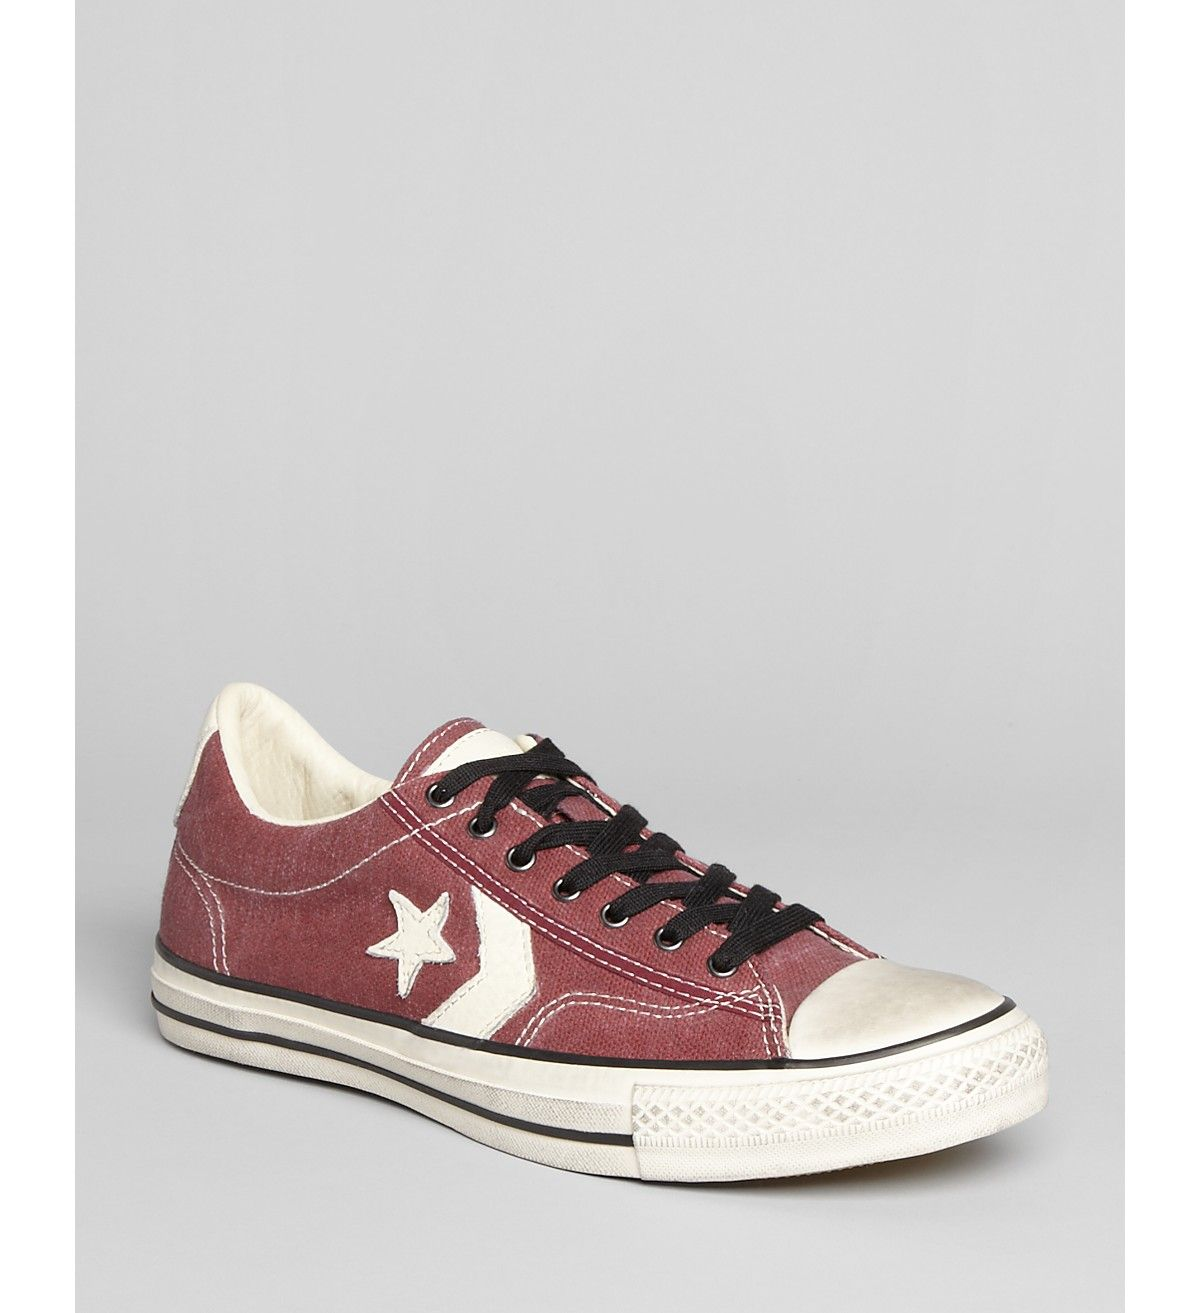 Converse By John Varvatos Sneakers Bloomingdale's